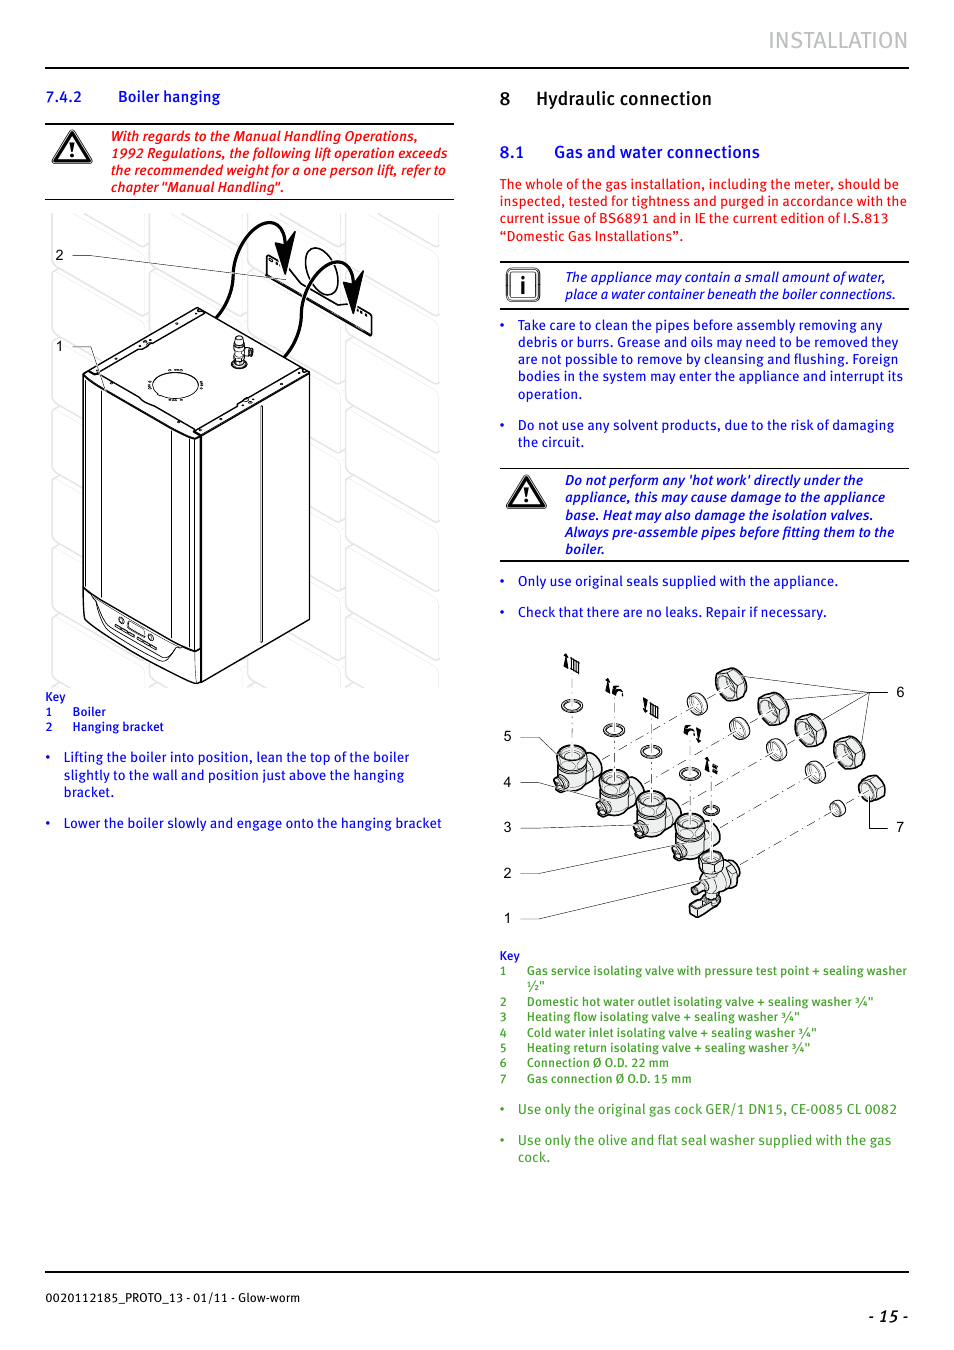 installation 8 hydraulic connection glow worm ultracom2 35 store user manual page 17 68